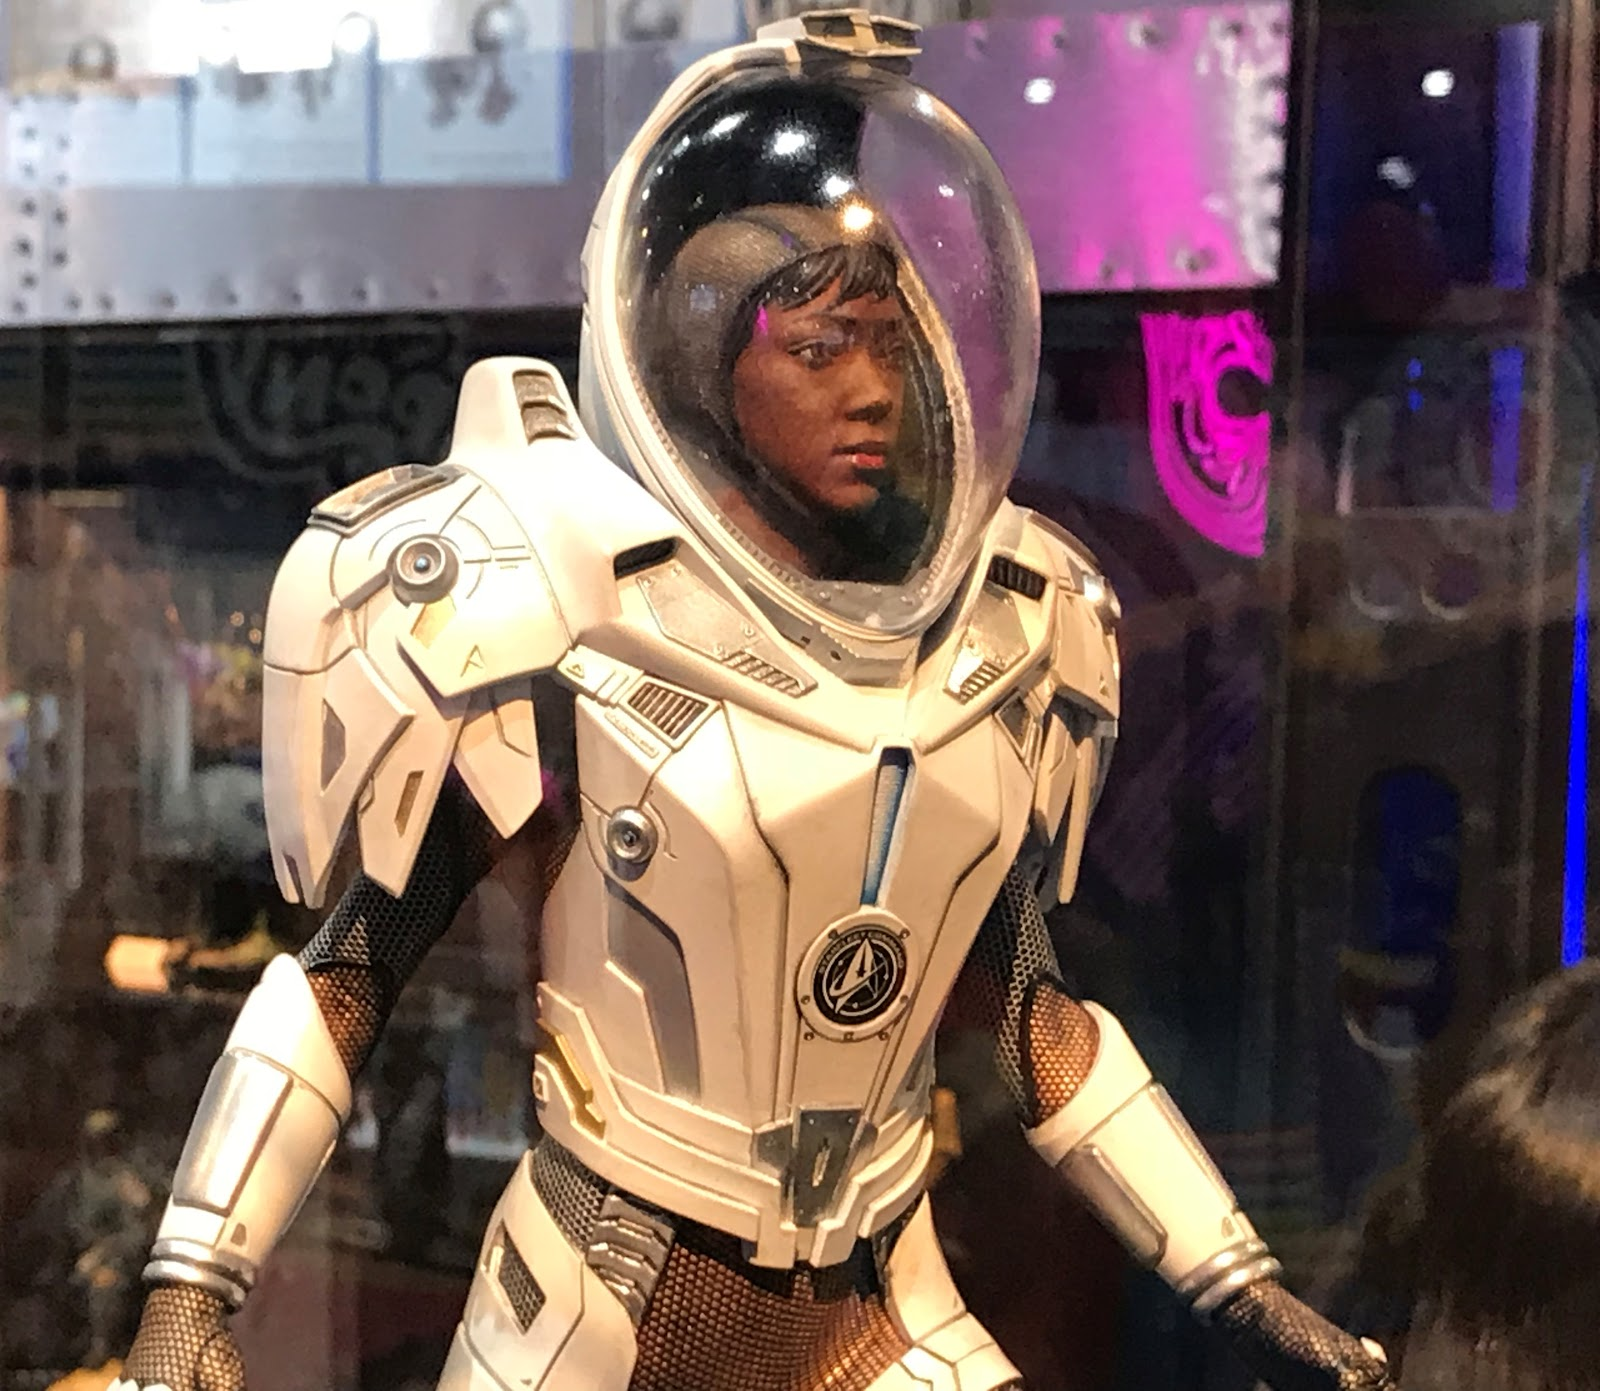 The Trek Collective: Gentle Giant show off amazing Discovery statues